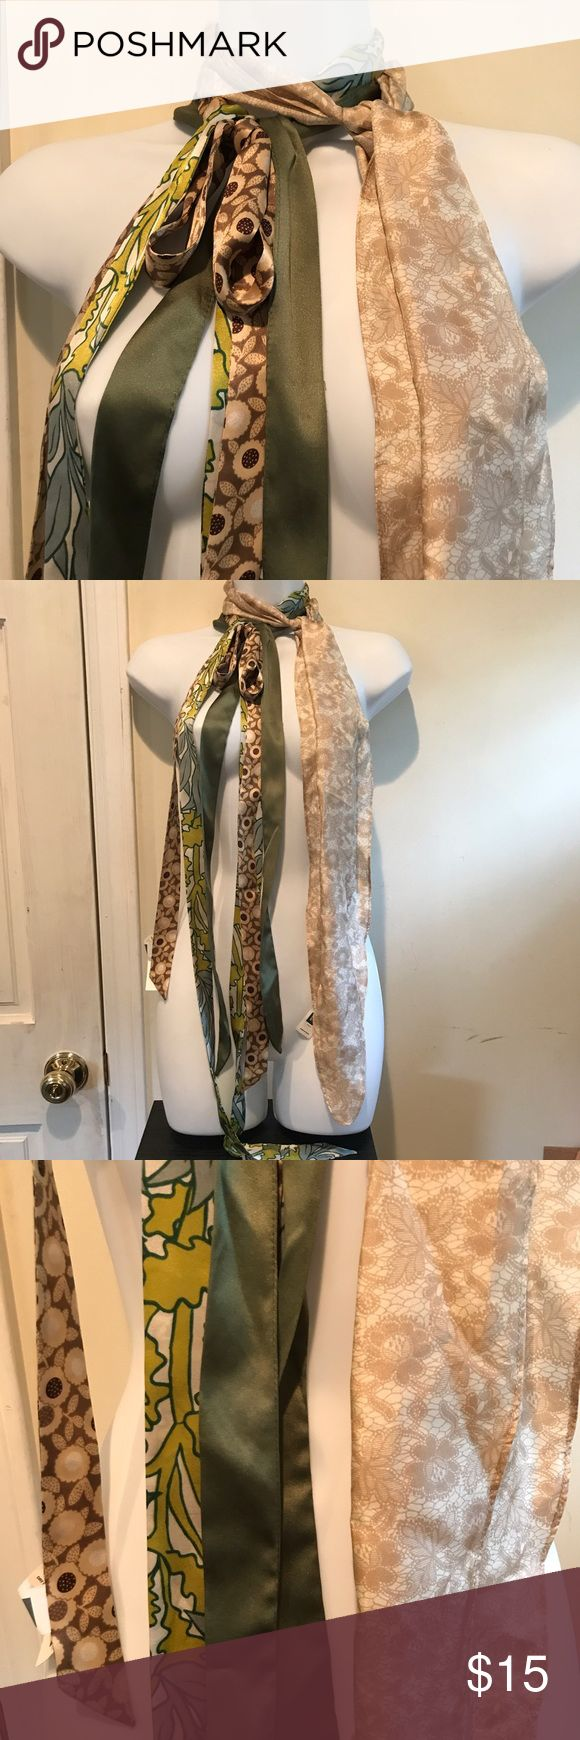 """Lot of 4 GAP silk ties belts hair accessories Lot of 4 silk ties from the Gap. Could be worn as a belt, around neck, or in hair. Tan lace is 66"""" long x 5"""" wide. Brown flowers is 83"""" l x 1 1/4"""" w and has price tag on it still. Green pattern is 82"""" l x 1 1/4"""" w. Solid green is 64"""" l x 1 1/4"""" l and is the only one without a tag. All came from an outlet store and have never been worn. GAP Accessories"""